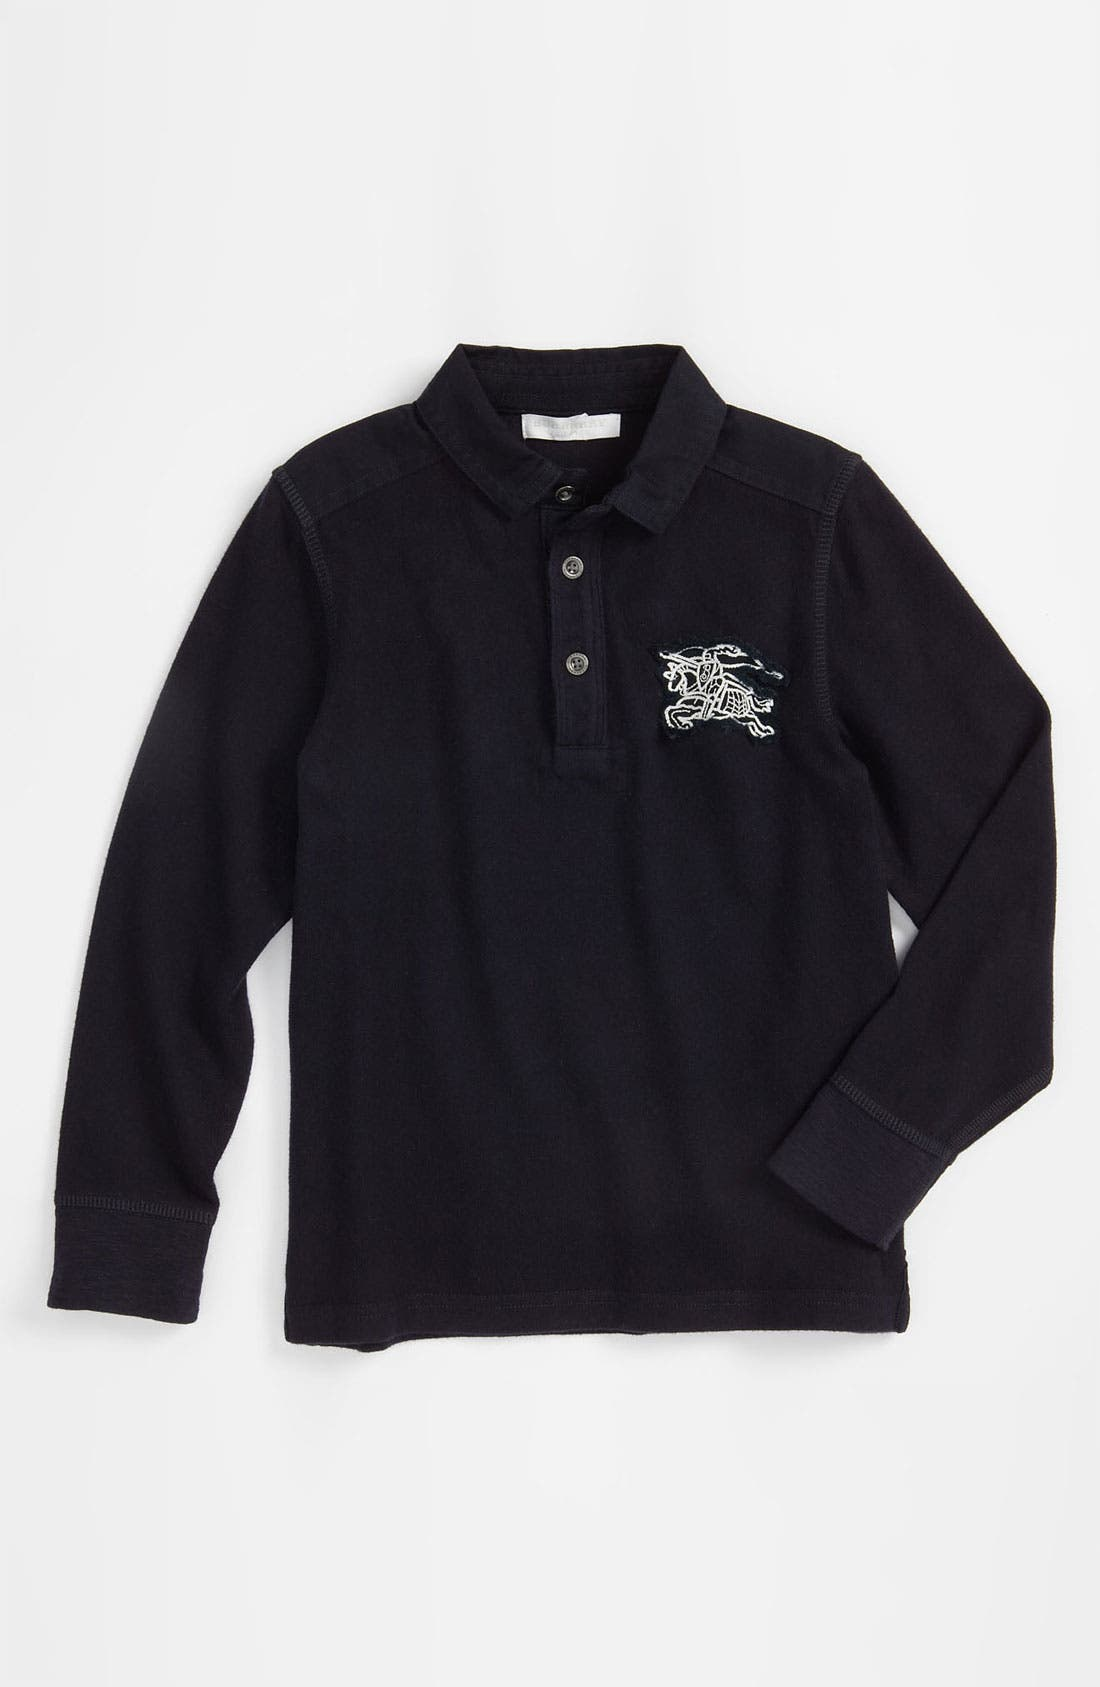 Main Image - Burberry Rugby Shirt (Little Boys)